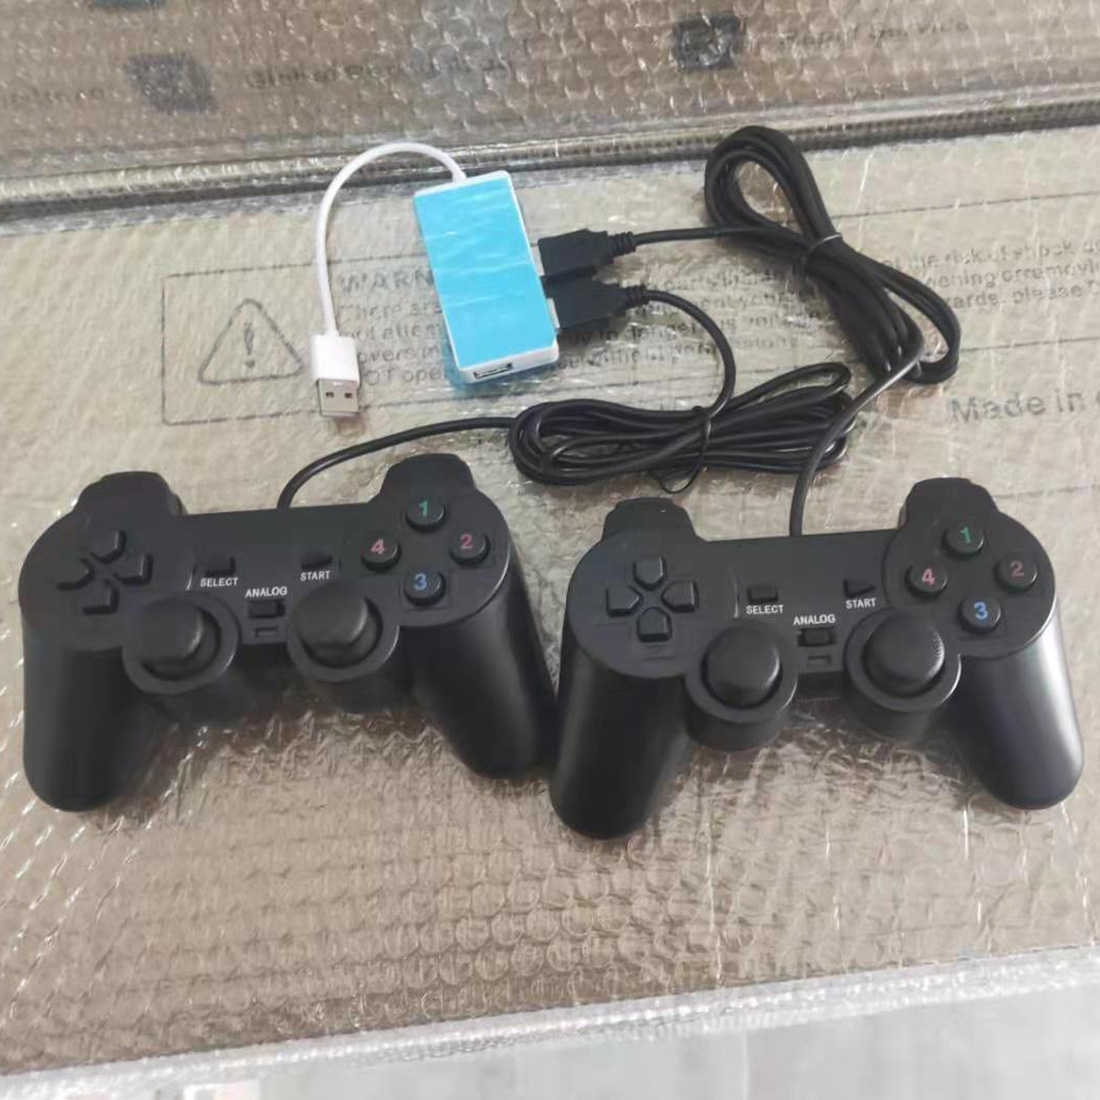 Wired Controllers Special Adapter Additional Components Make 3-4 Player for Pandora Box 11S /12S /18S Pro Arcade